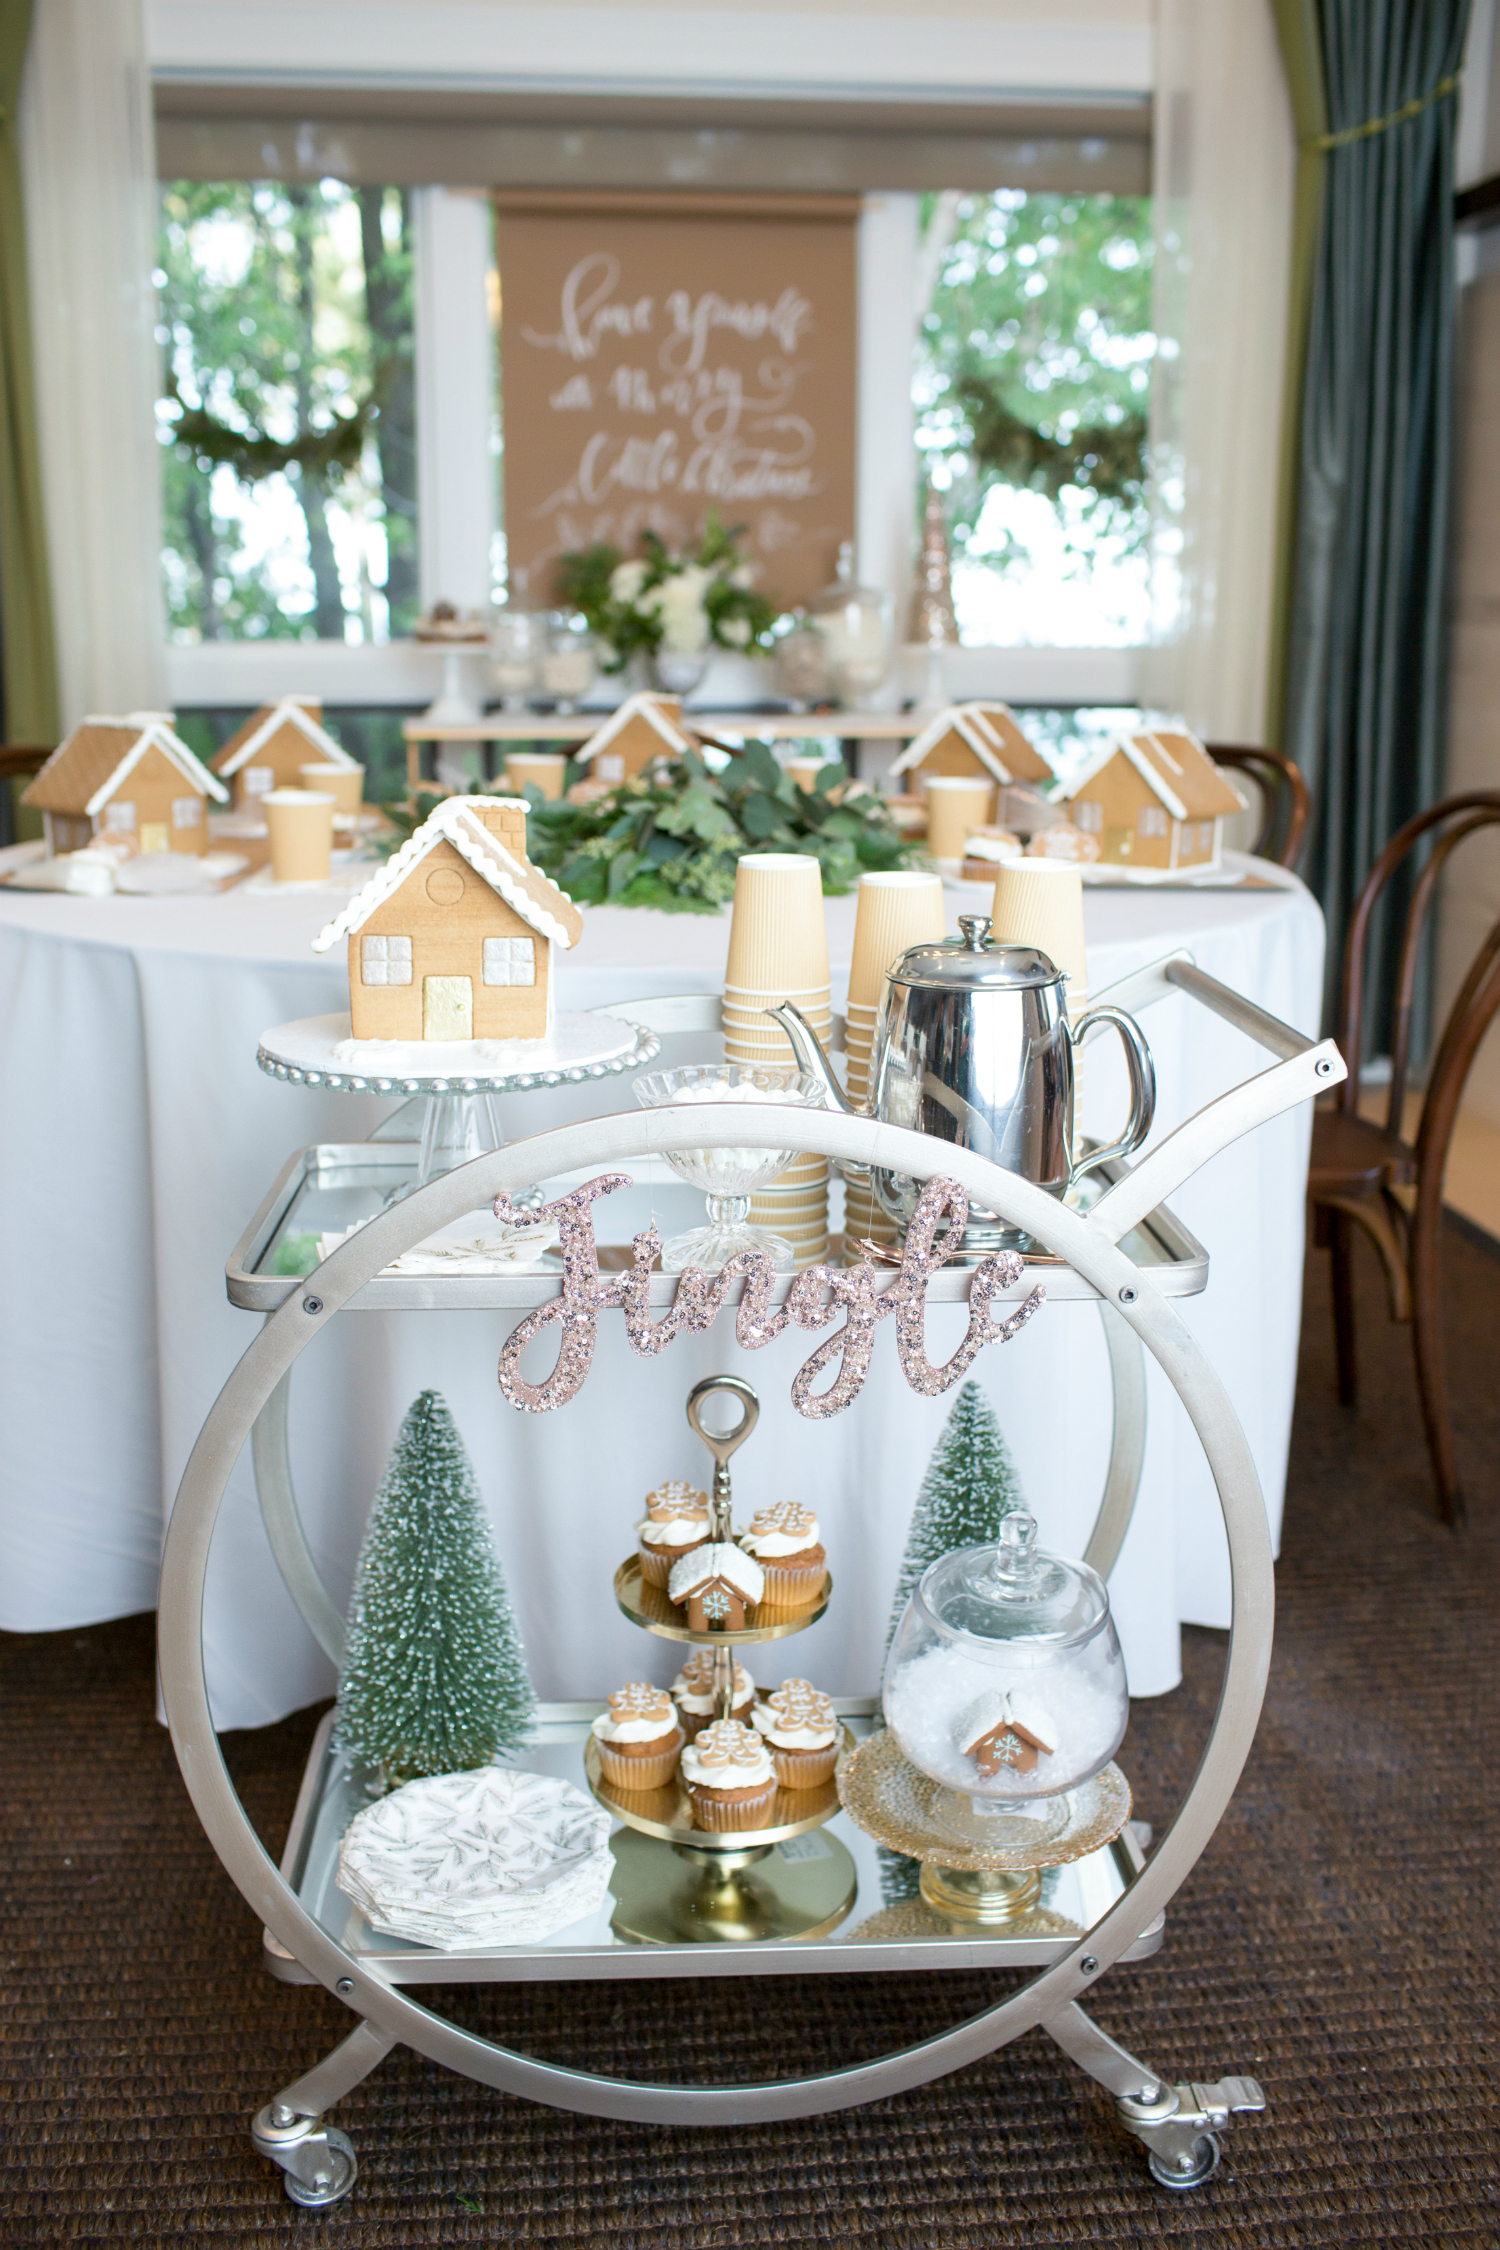 One Stylish Party Shutterfly Gingerbread Dream 2017-61